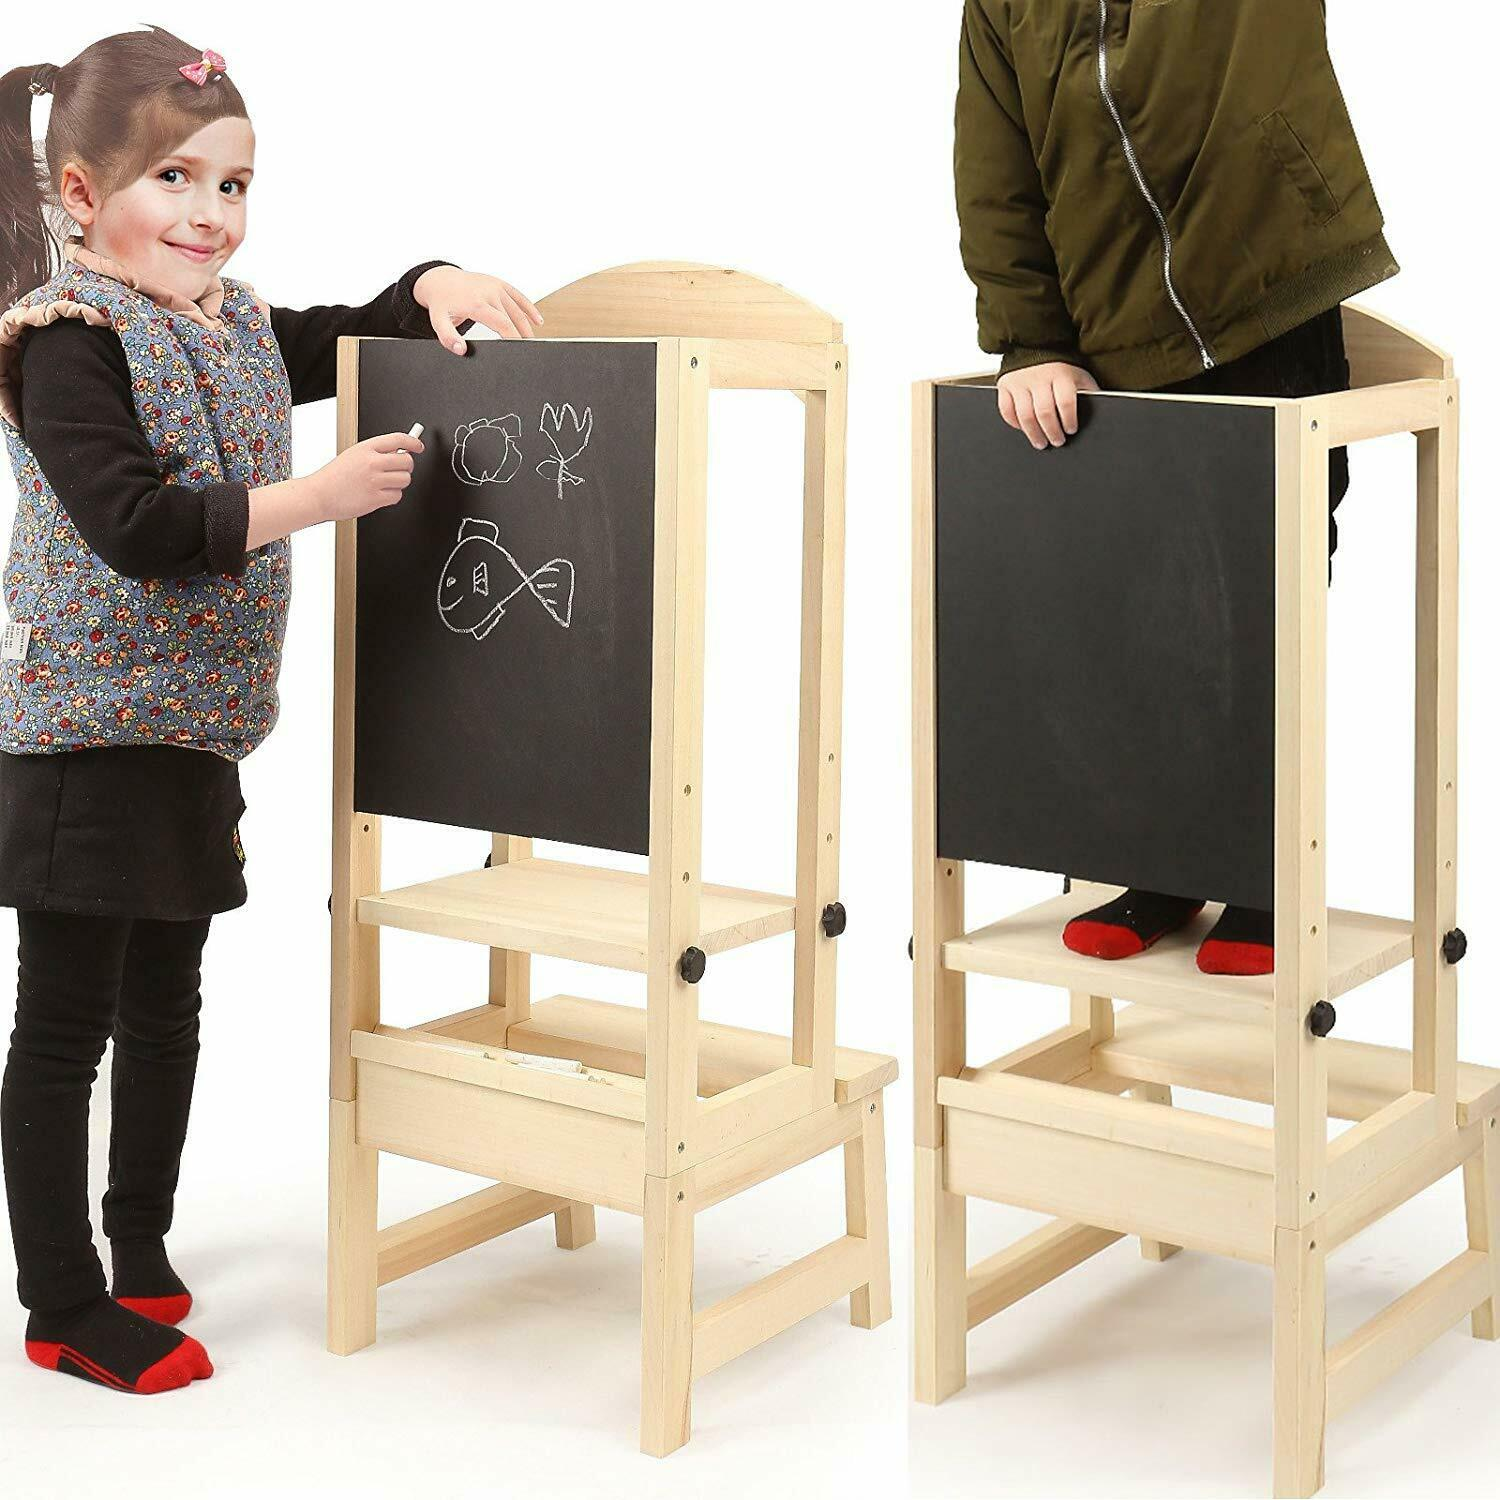 Details About Kids Learning Stool Kitchen Step Stool Helper Safety With Chalkboard Whiteboard